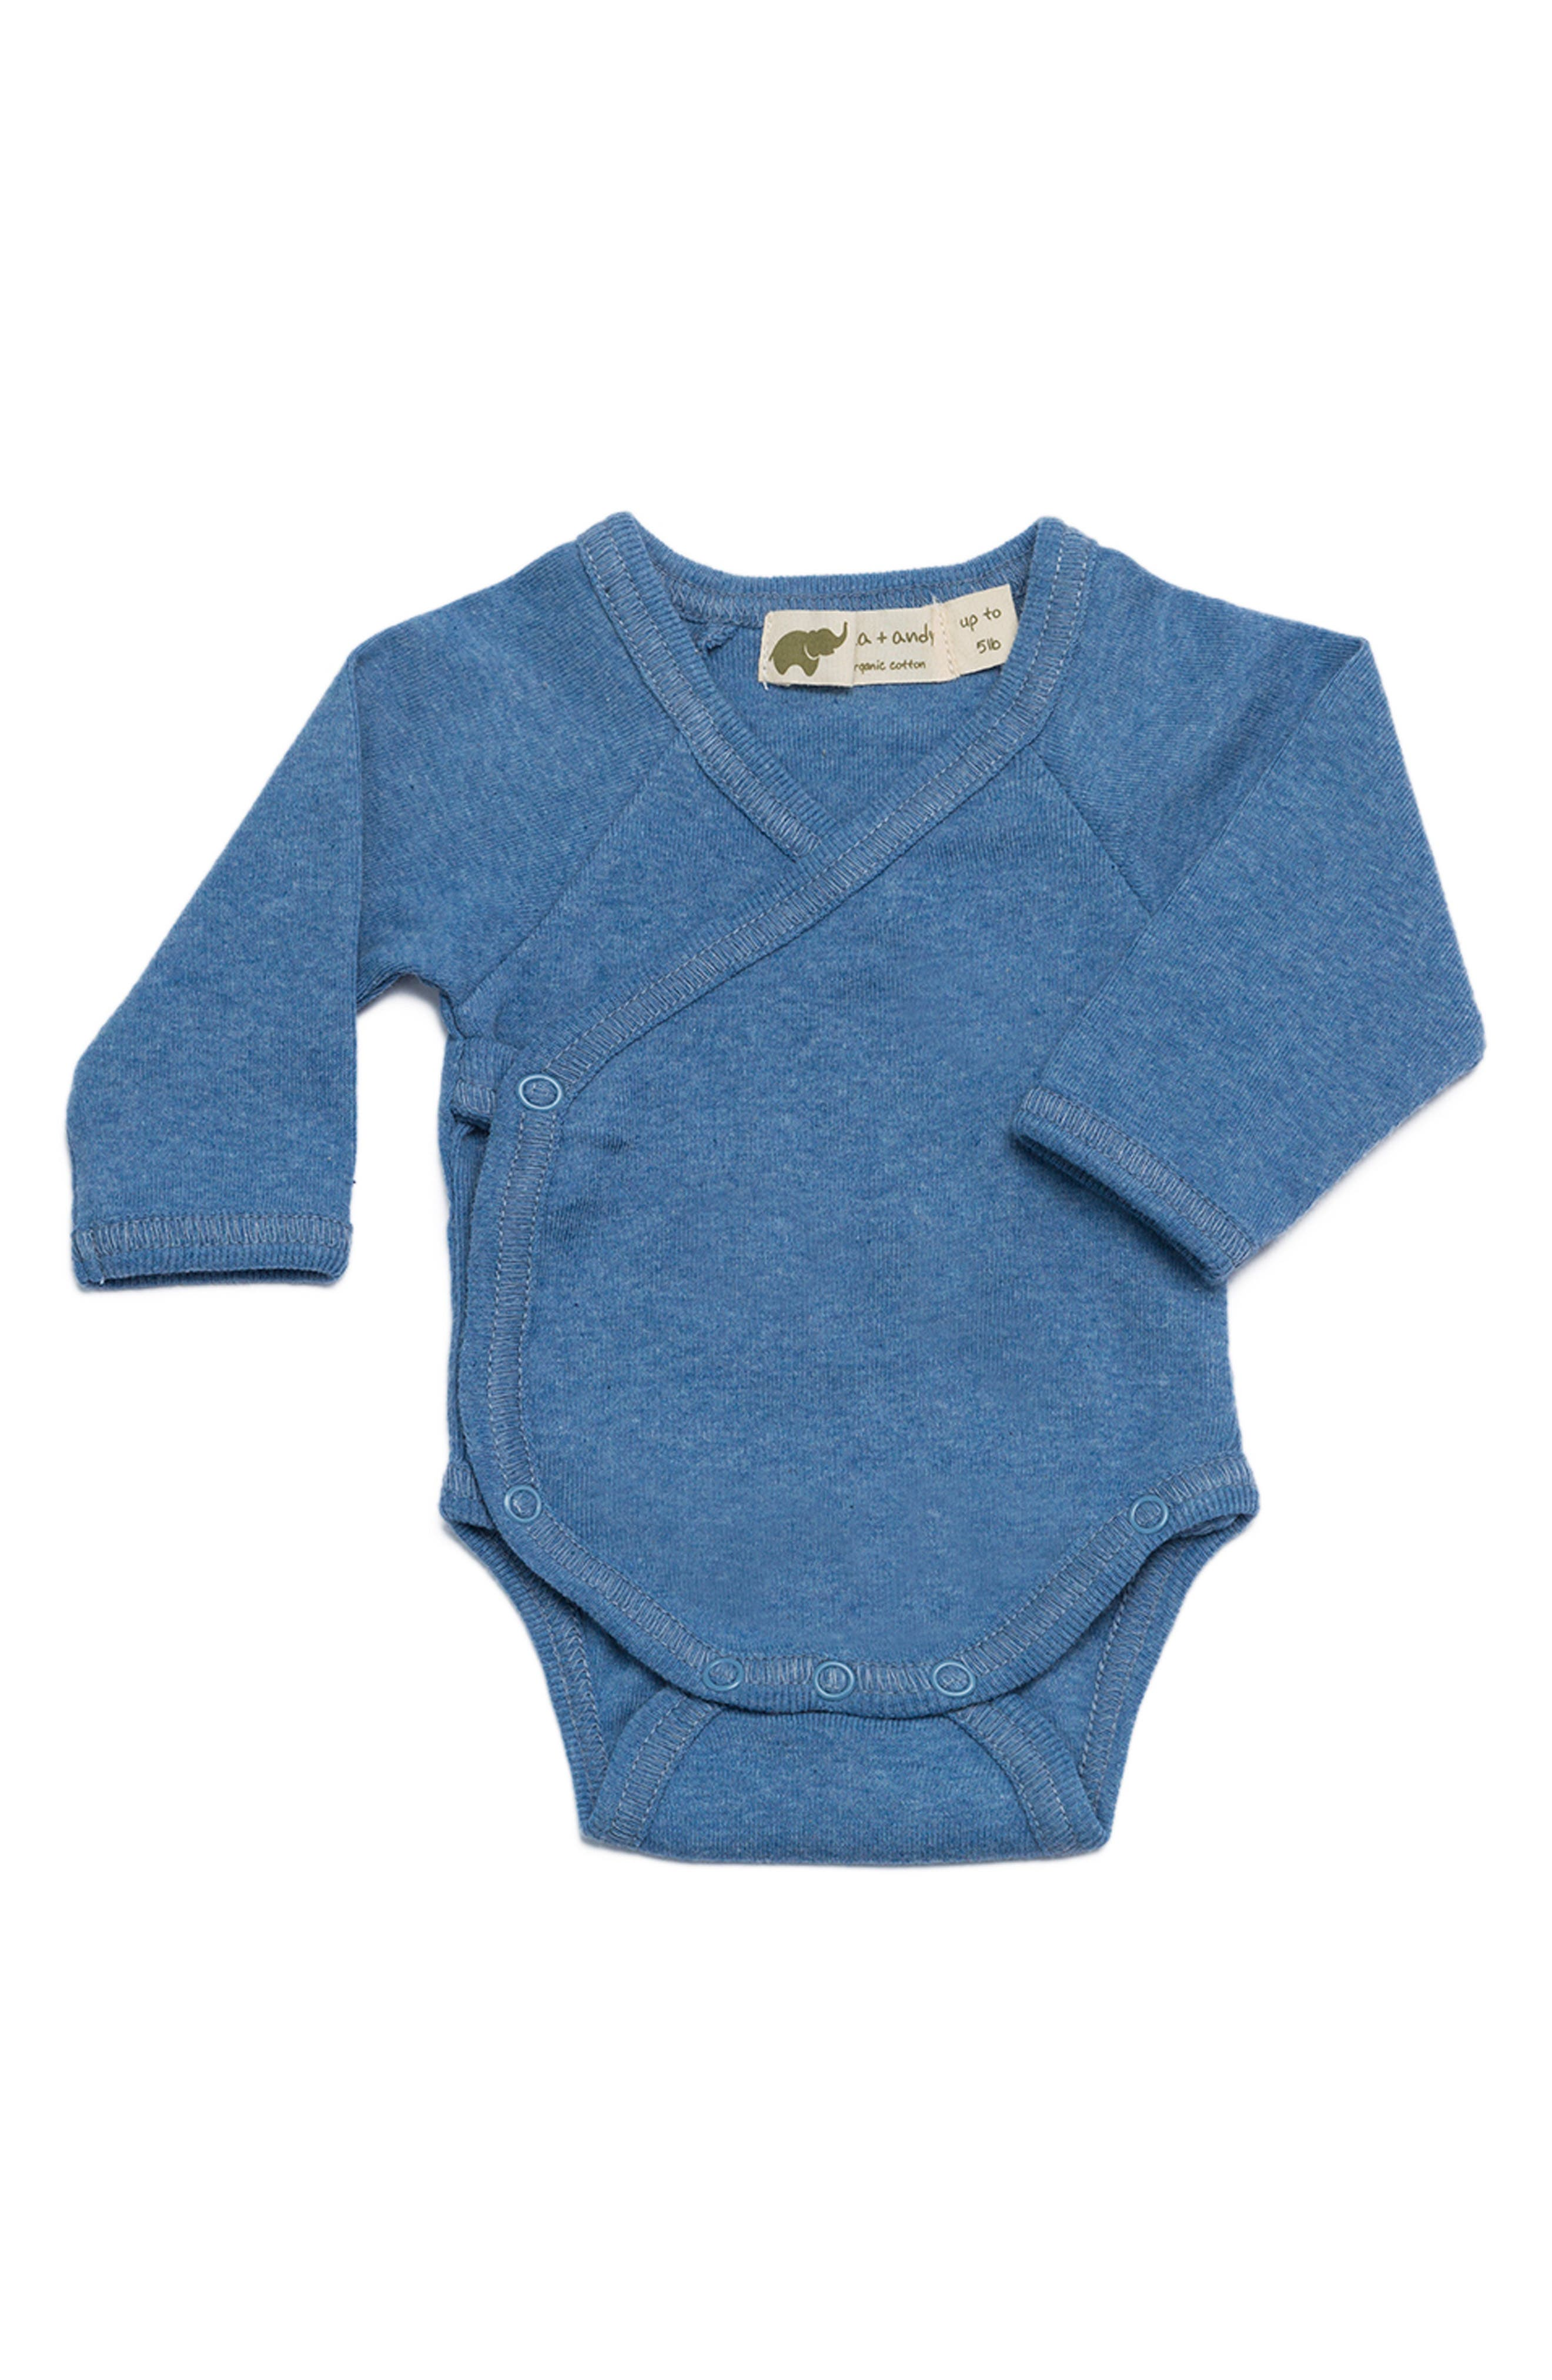 Monica + Andy Lucky Organic Cotton Bodysuit (Baby)